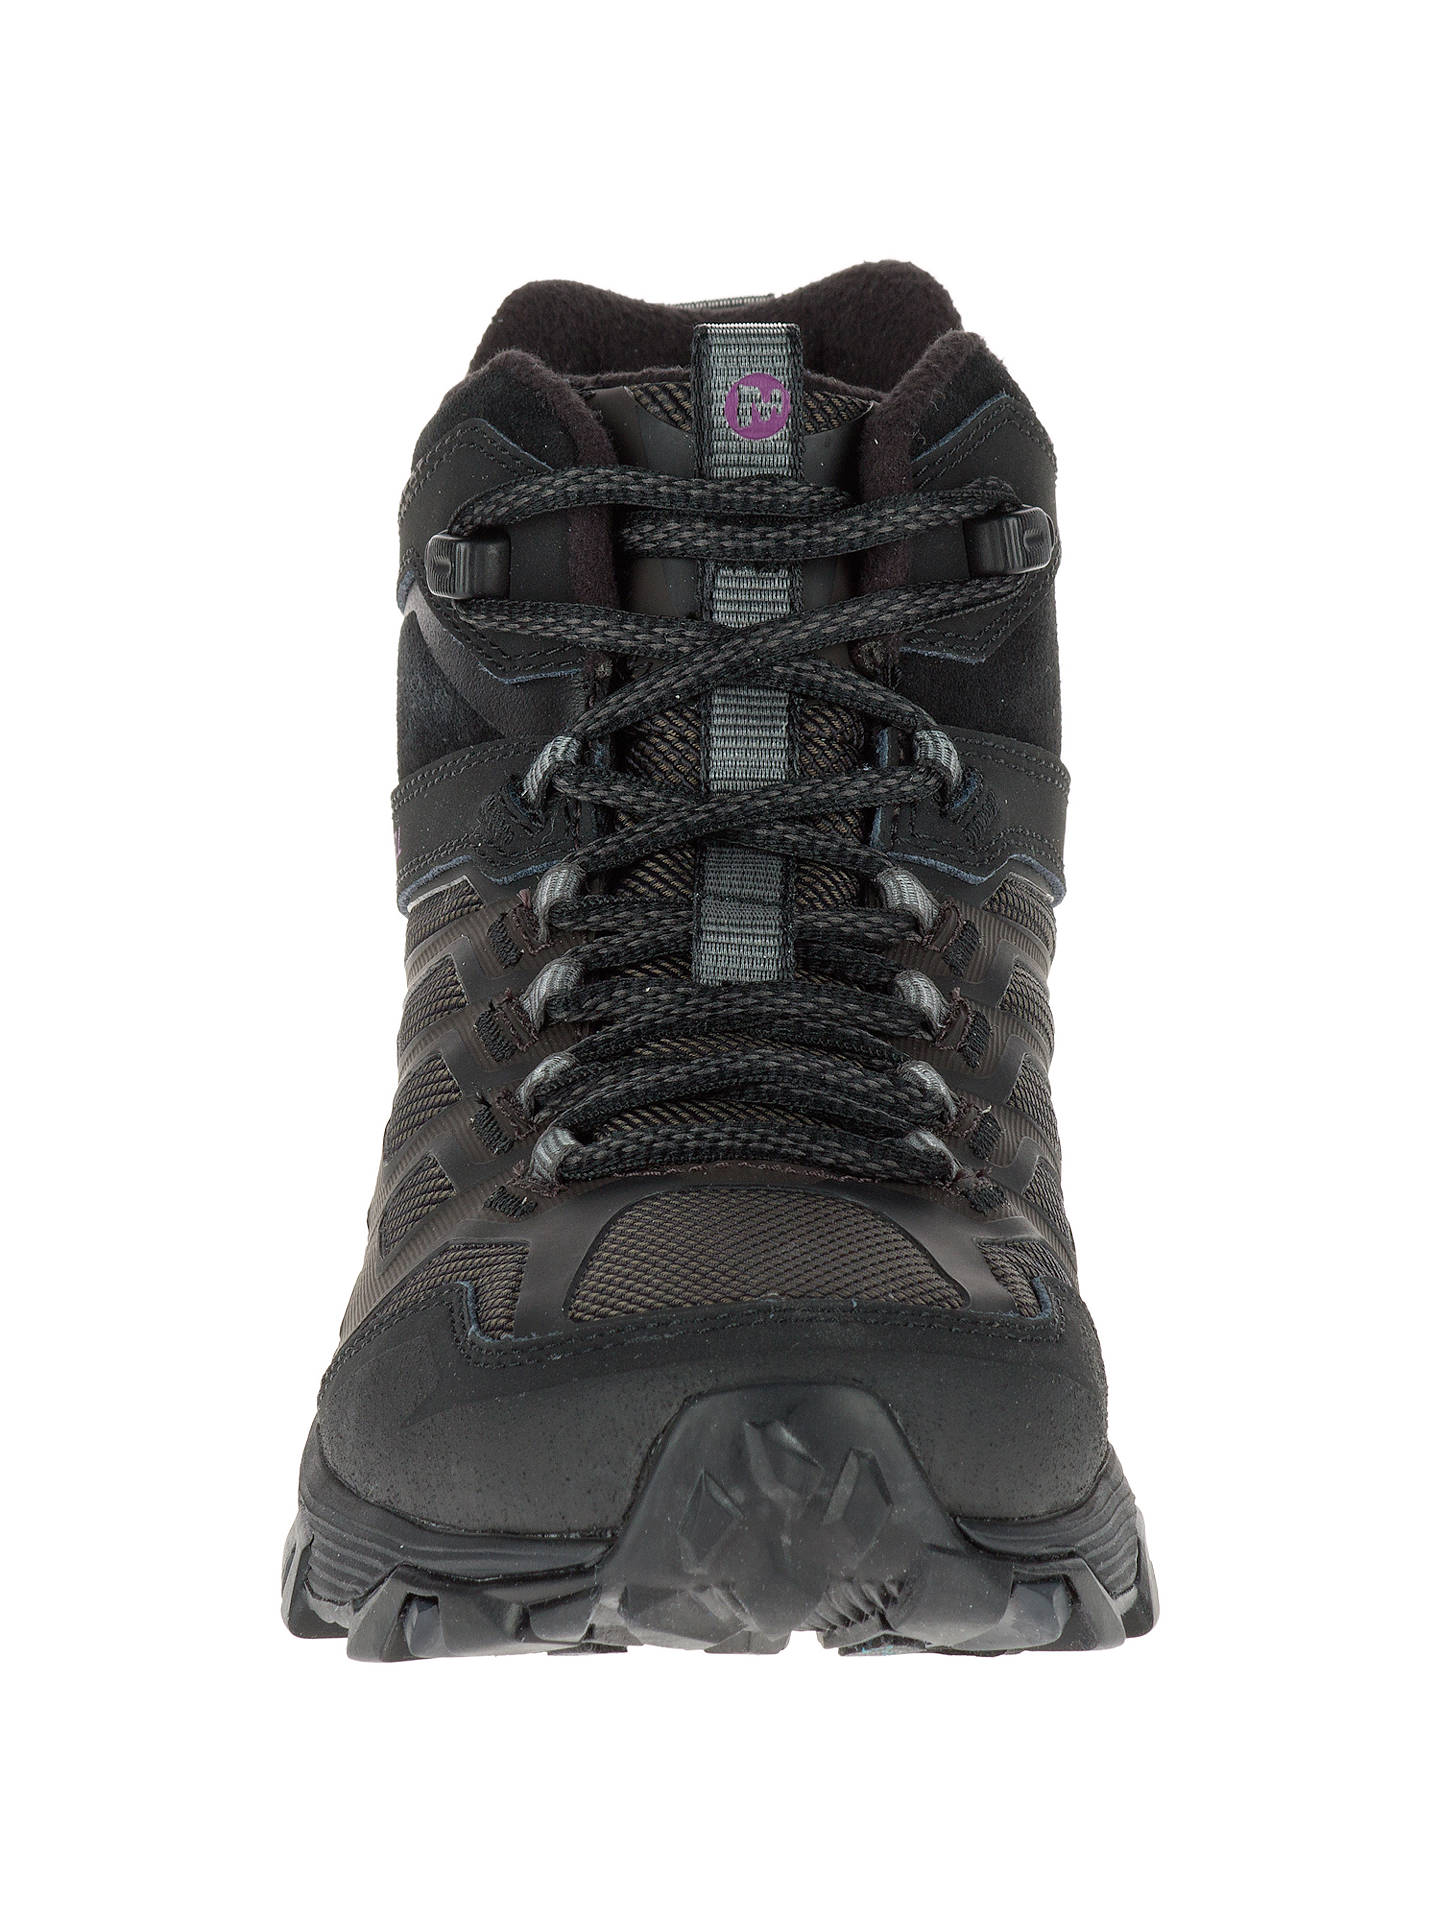 2684734b2e2 Merrell Moab FST Ice+ Thermo Women's Walking Shoes, Black at John ...